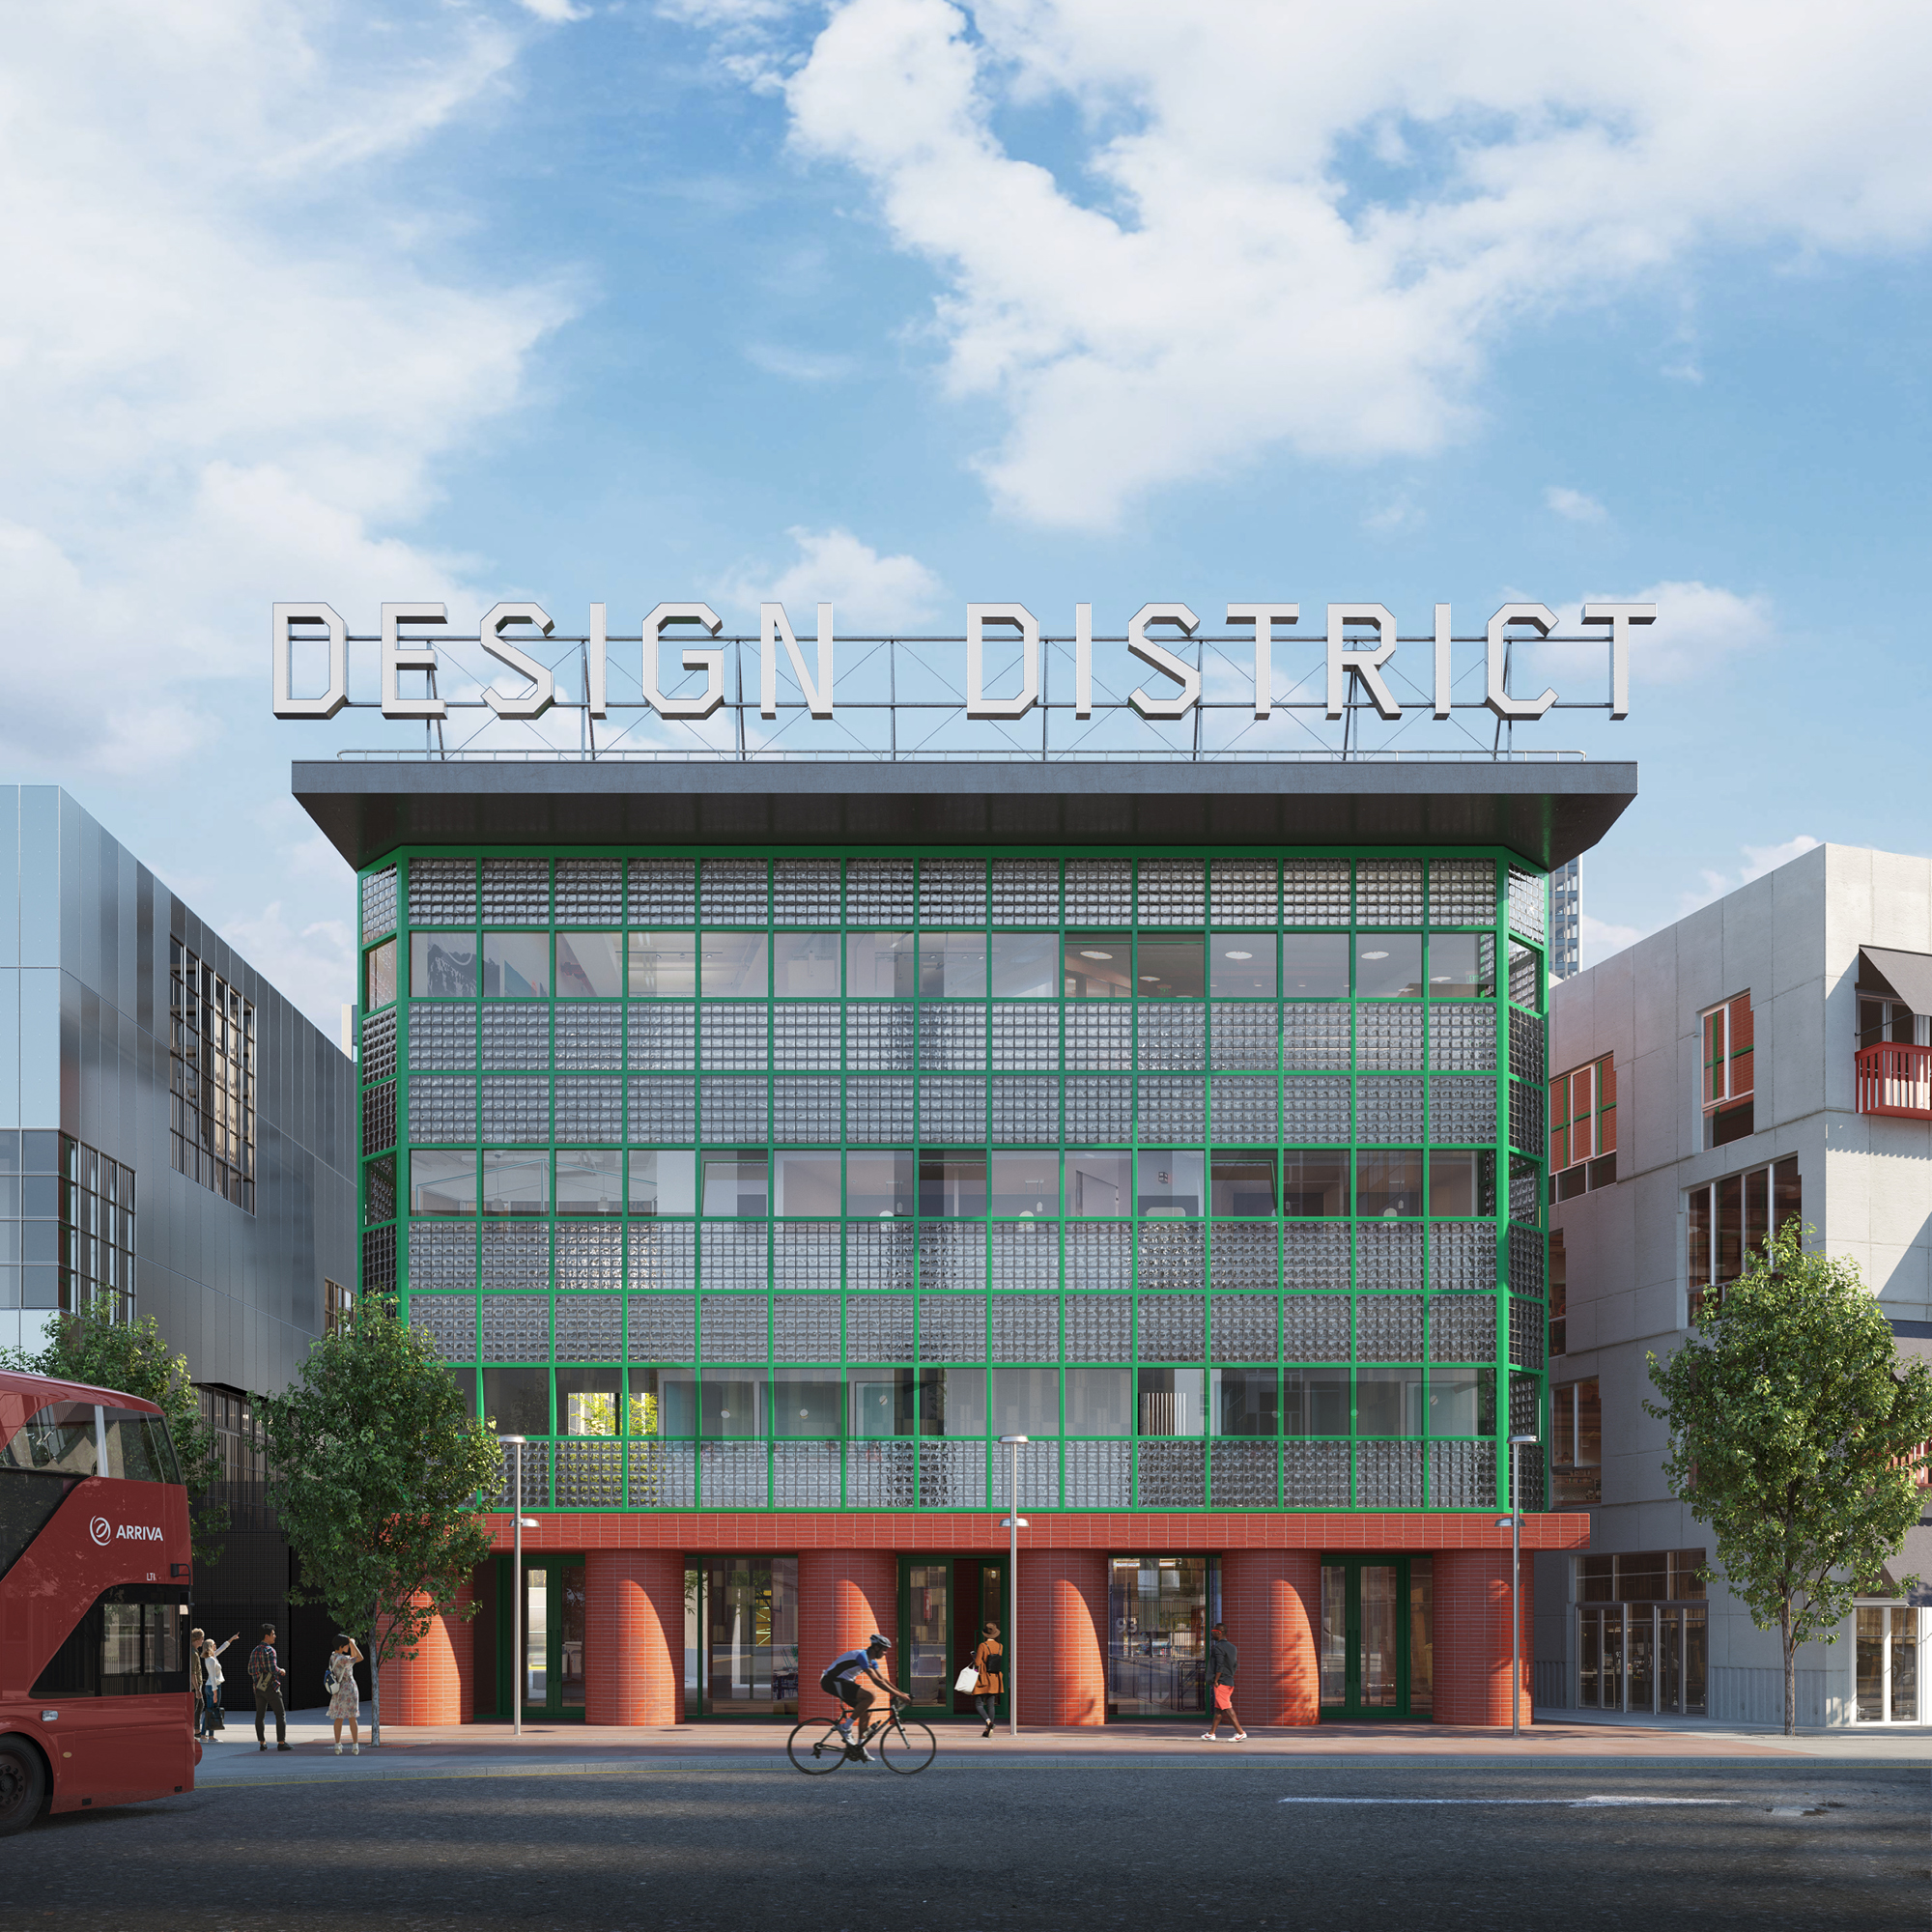 The Design District will open in North Greenwich later this year